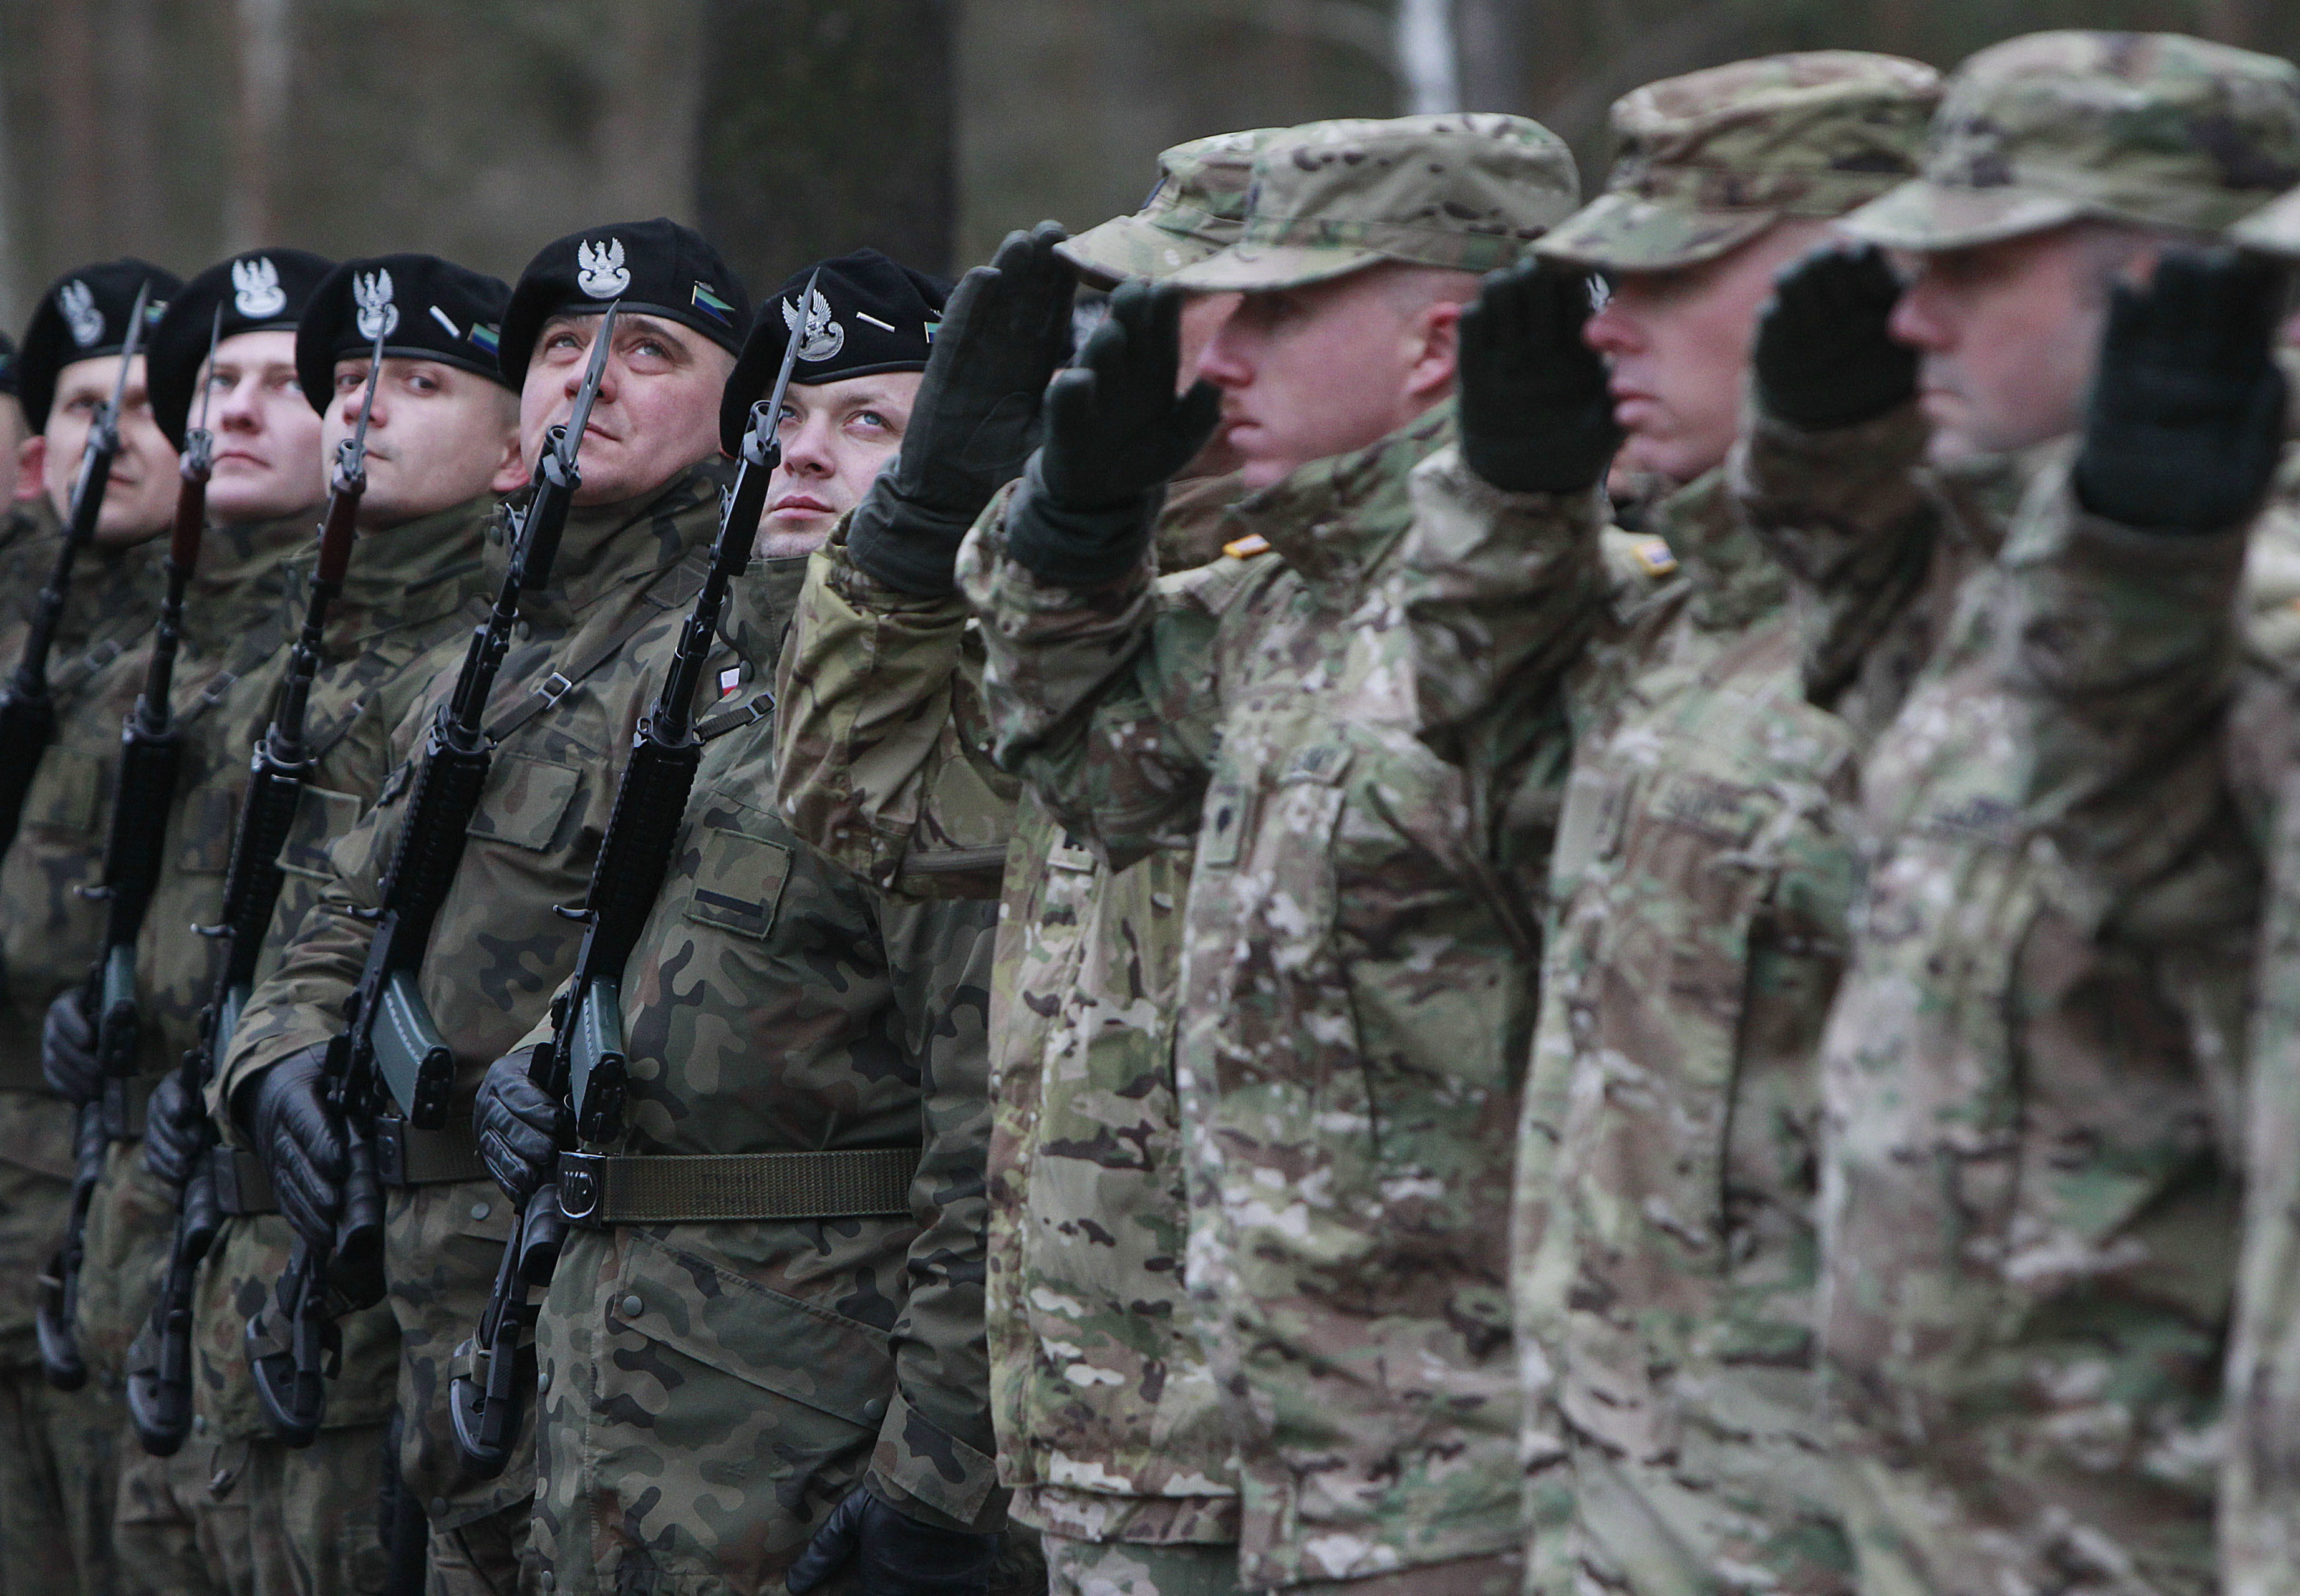 FILE - The  first U.S. troops arrive at the Zagan base in western Poland as part of deterrence force of some 1,000 troops to be based there, Jan. 12, 2017